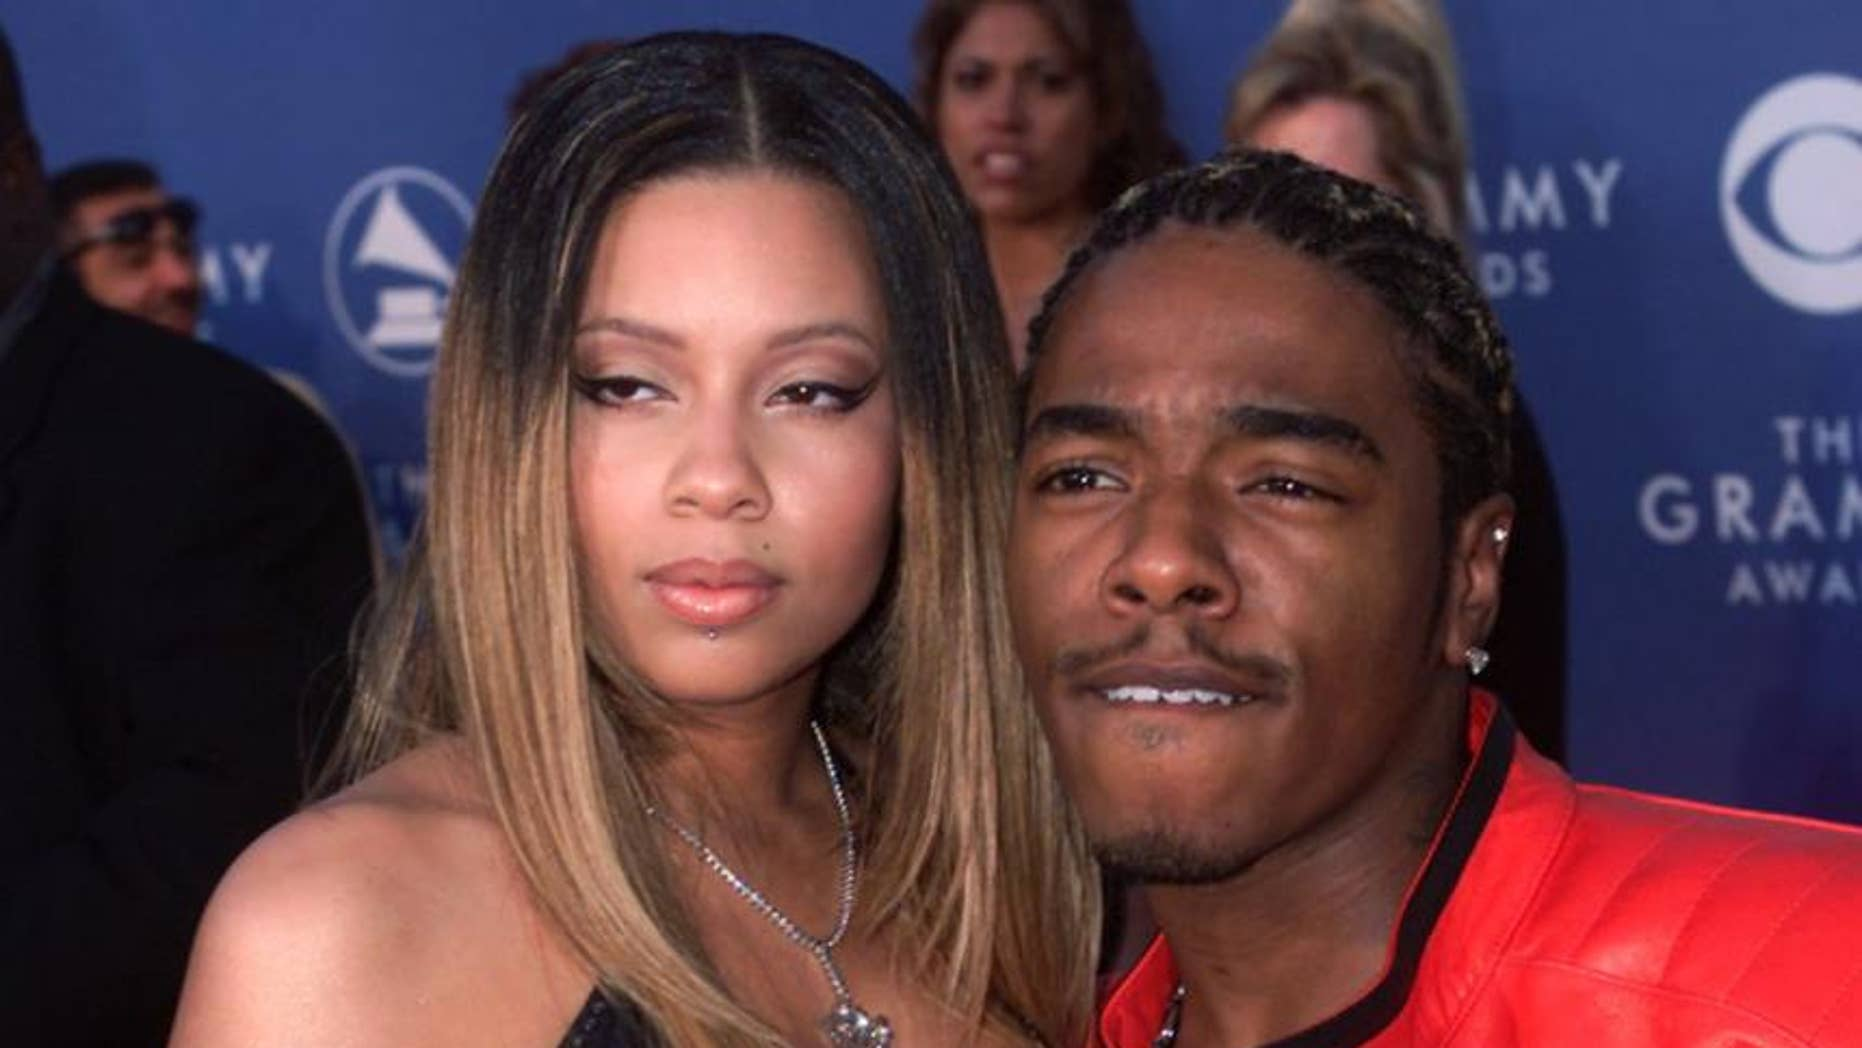 Rapper Sisqo (right) and his girlfriend Tara arrive at the 43rd annual Grammy Awards in Los Angeles on February 21, 2001.